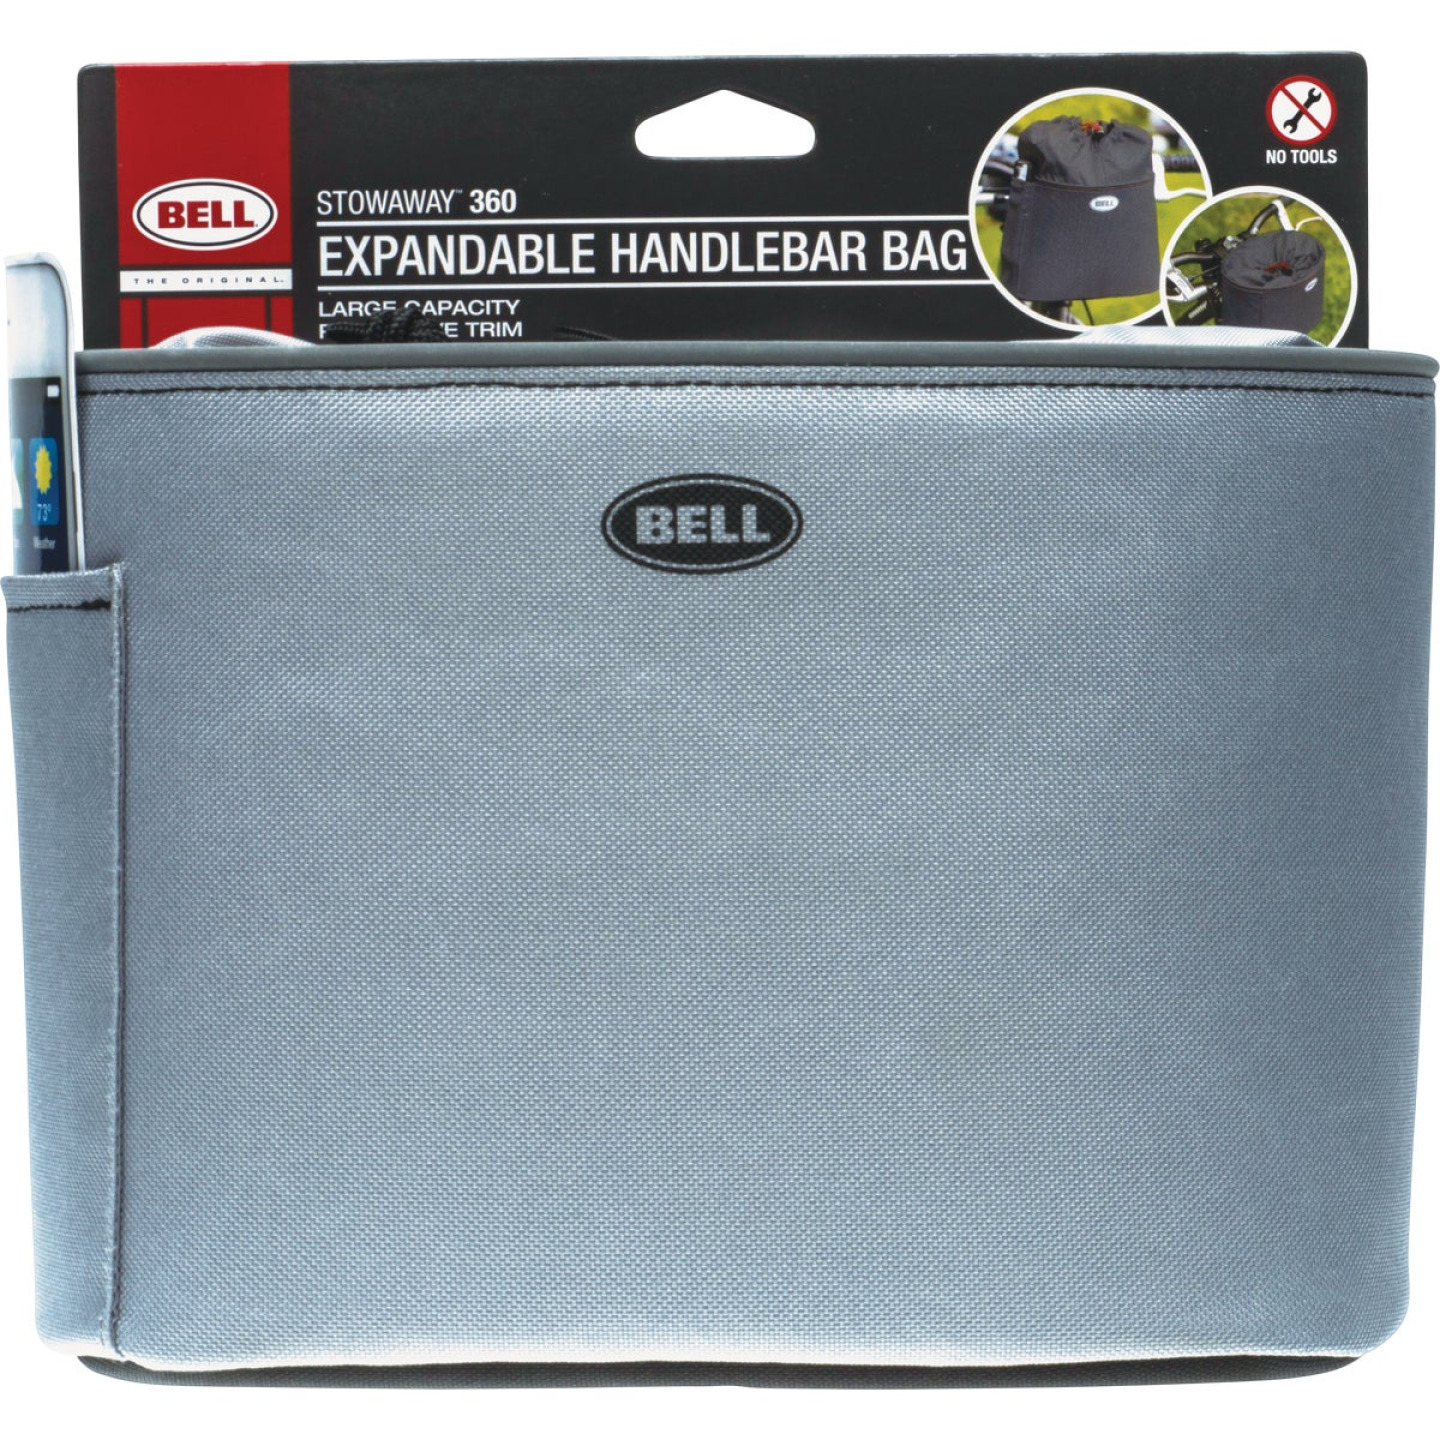 Bell Sports Stowaway 360 5 In. W. x H. 6.5 In. H. x 8.5 In. L. Bicycle Handlebar Bag Image 1